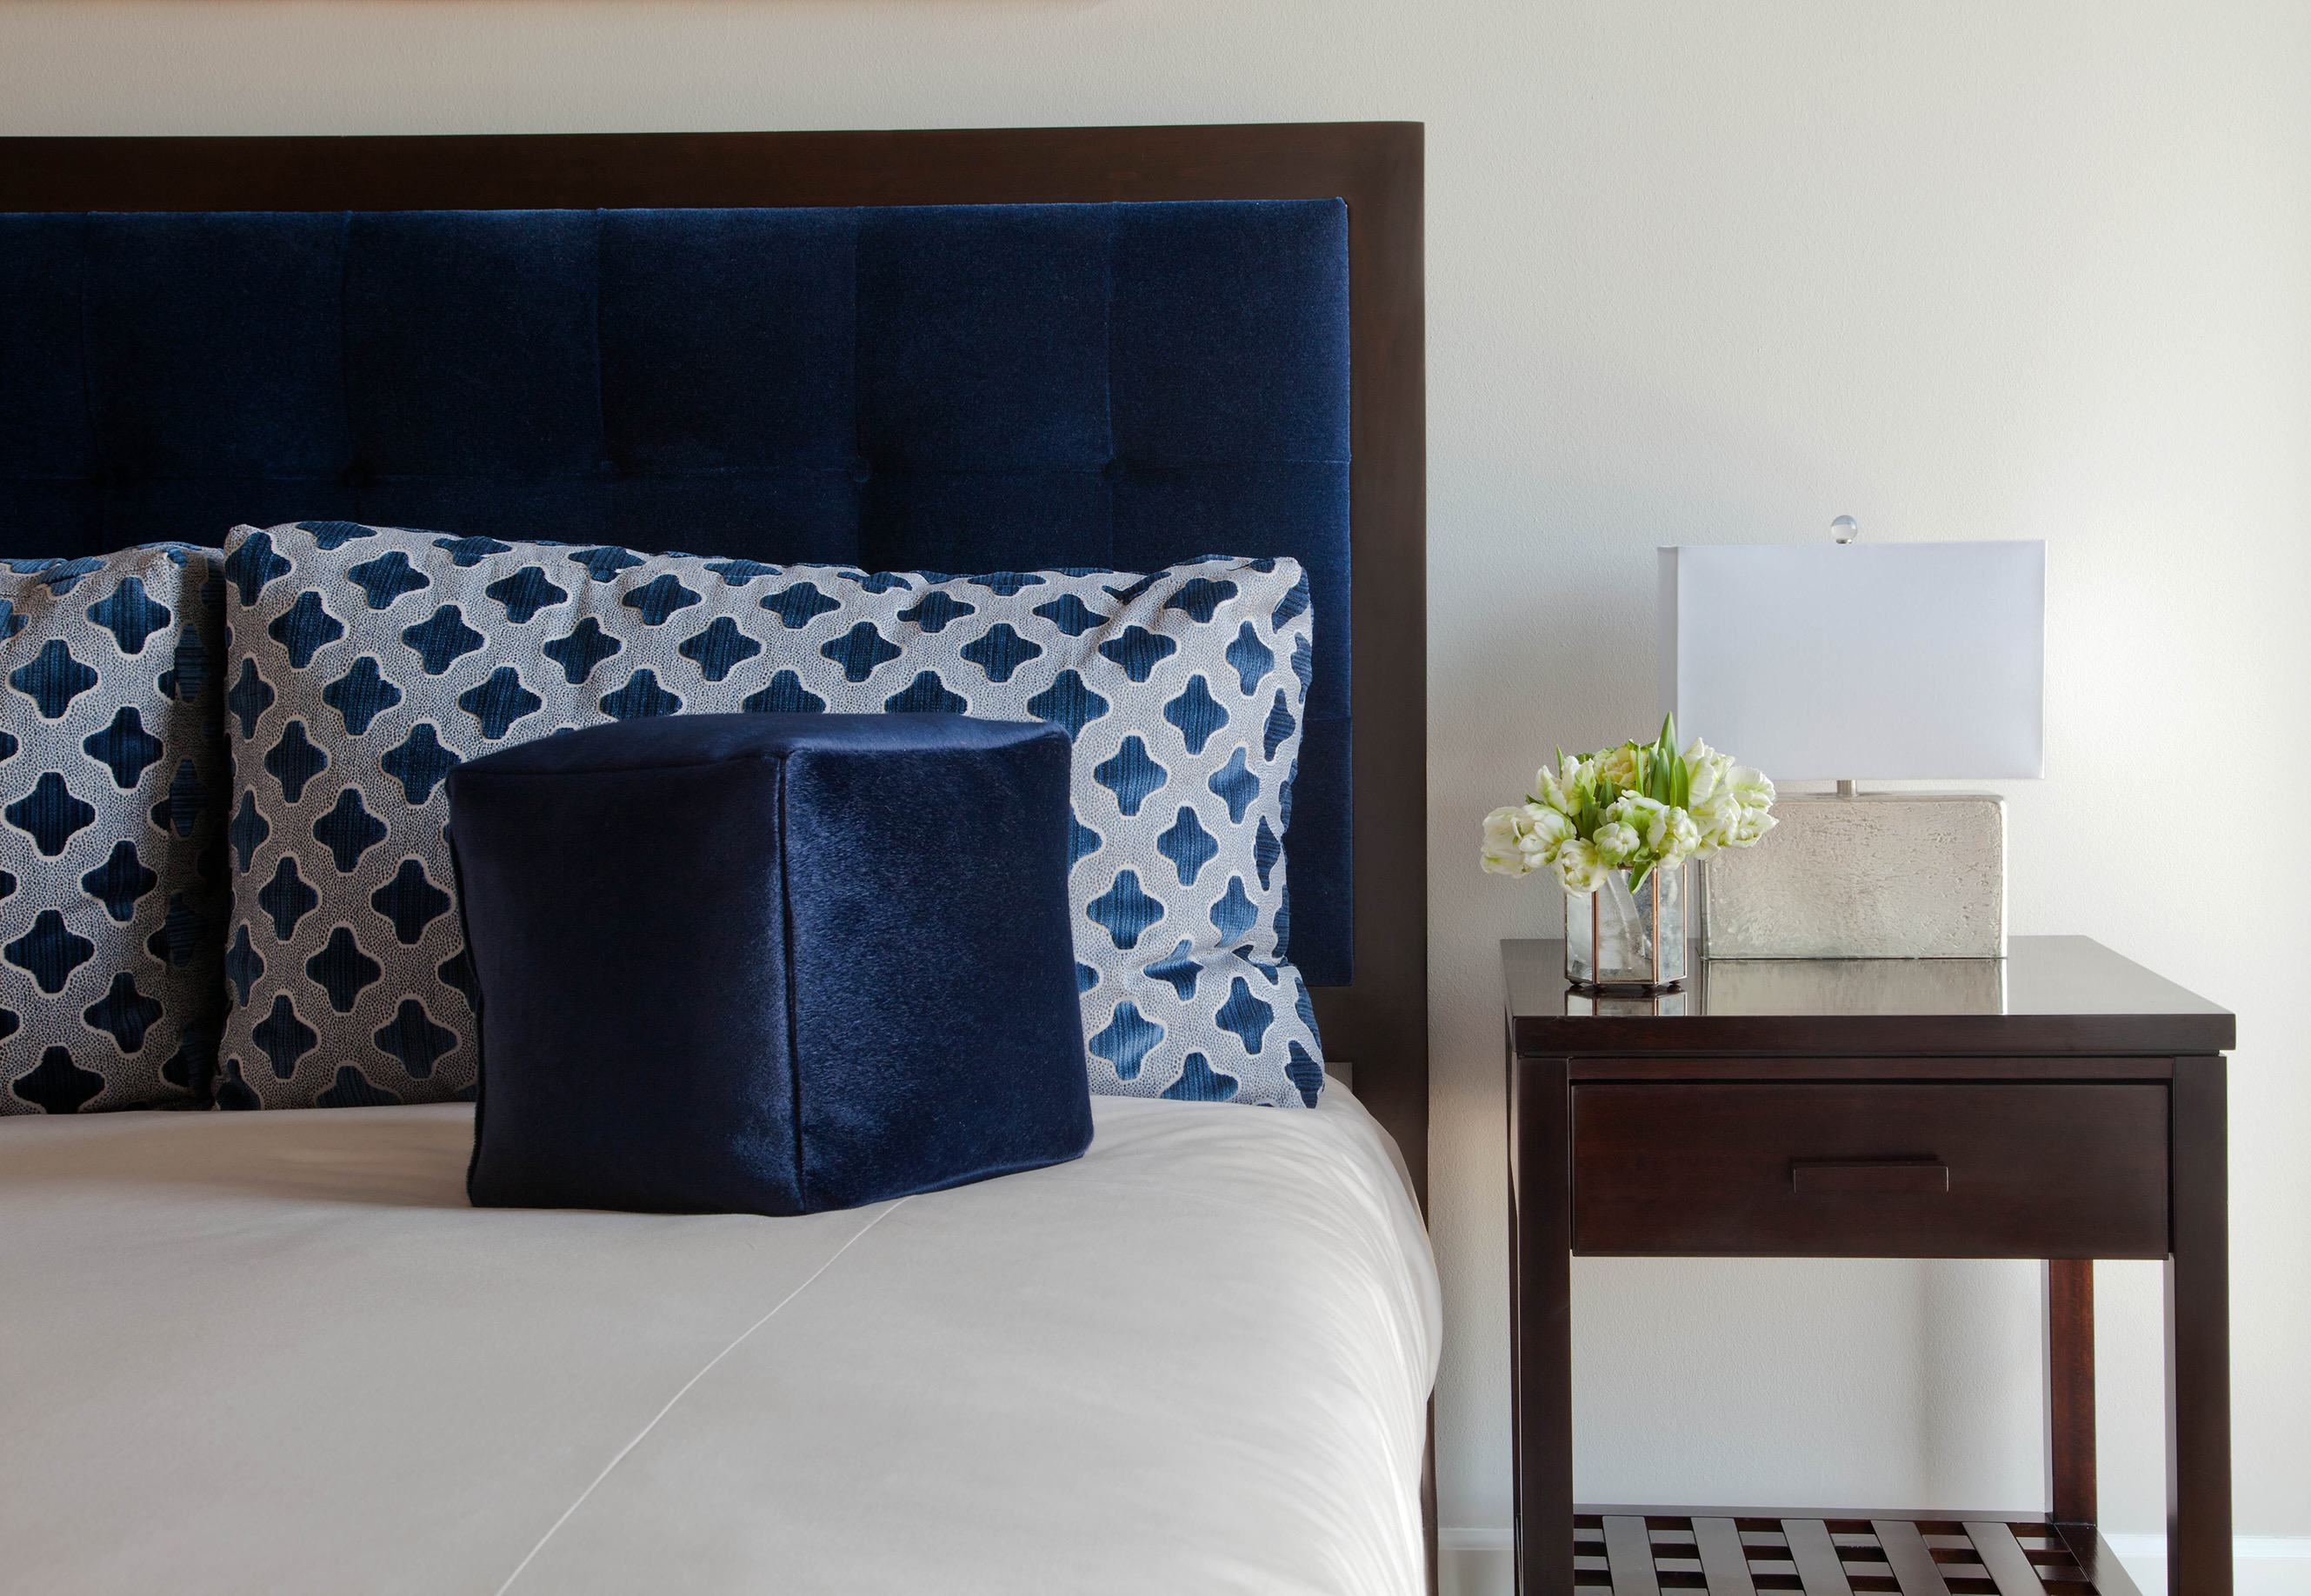 Transitional Bedroom With Peacock Blue Accents (Image 14 of 15)